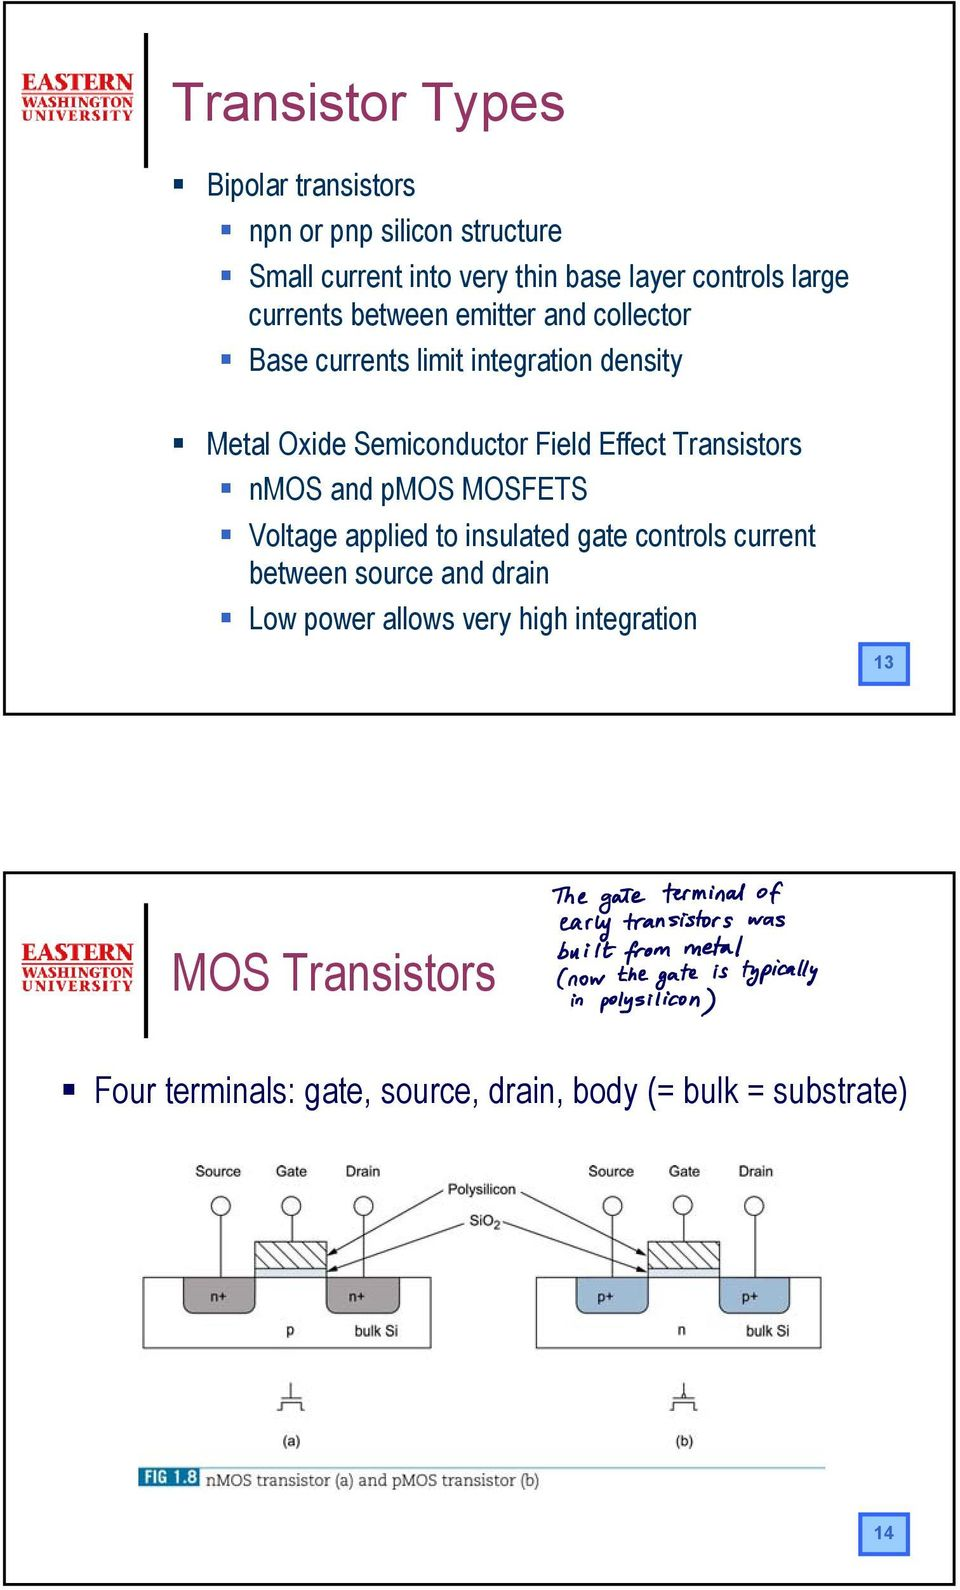 Effect Transistors nmos and pmos MOSFETS Voltage applied to insulated gate controls current between source and drain